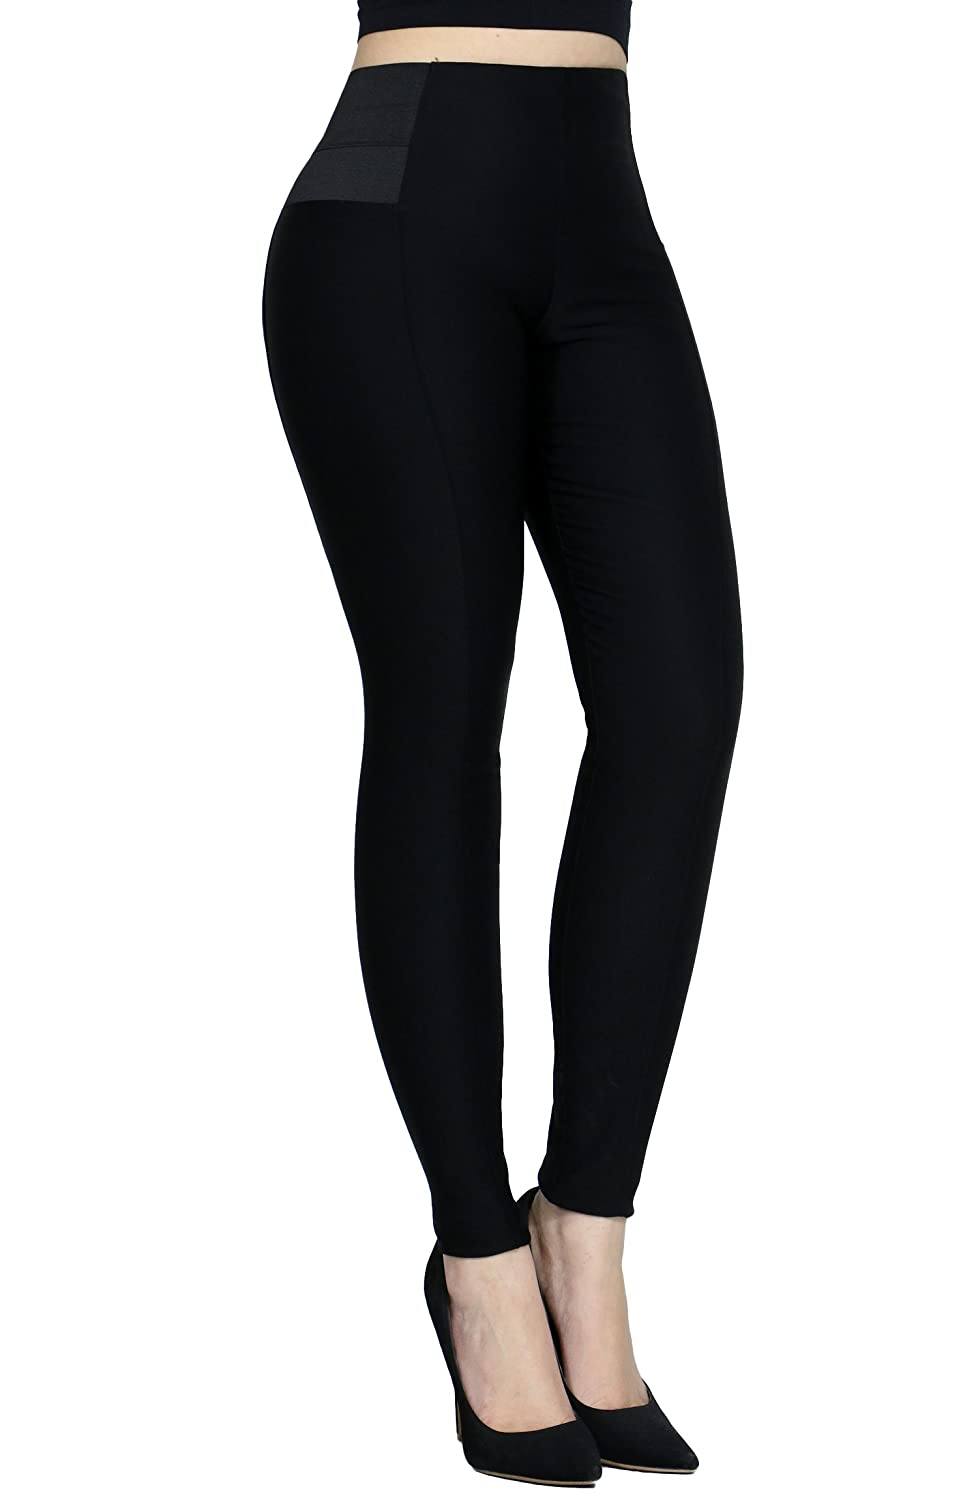 Women's Sexy Stretchy Slimming Soild Casual Dress Pants With Side Elastic Band